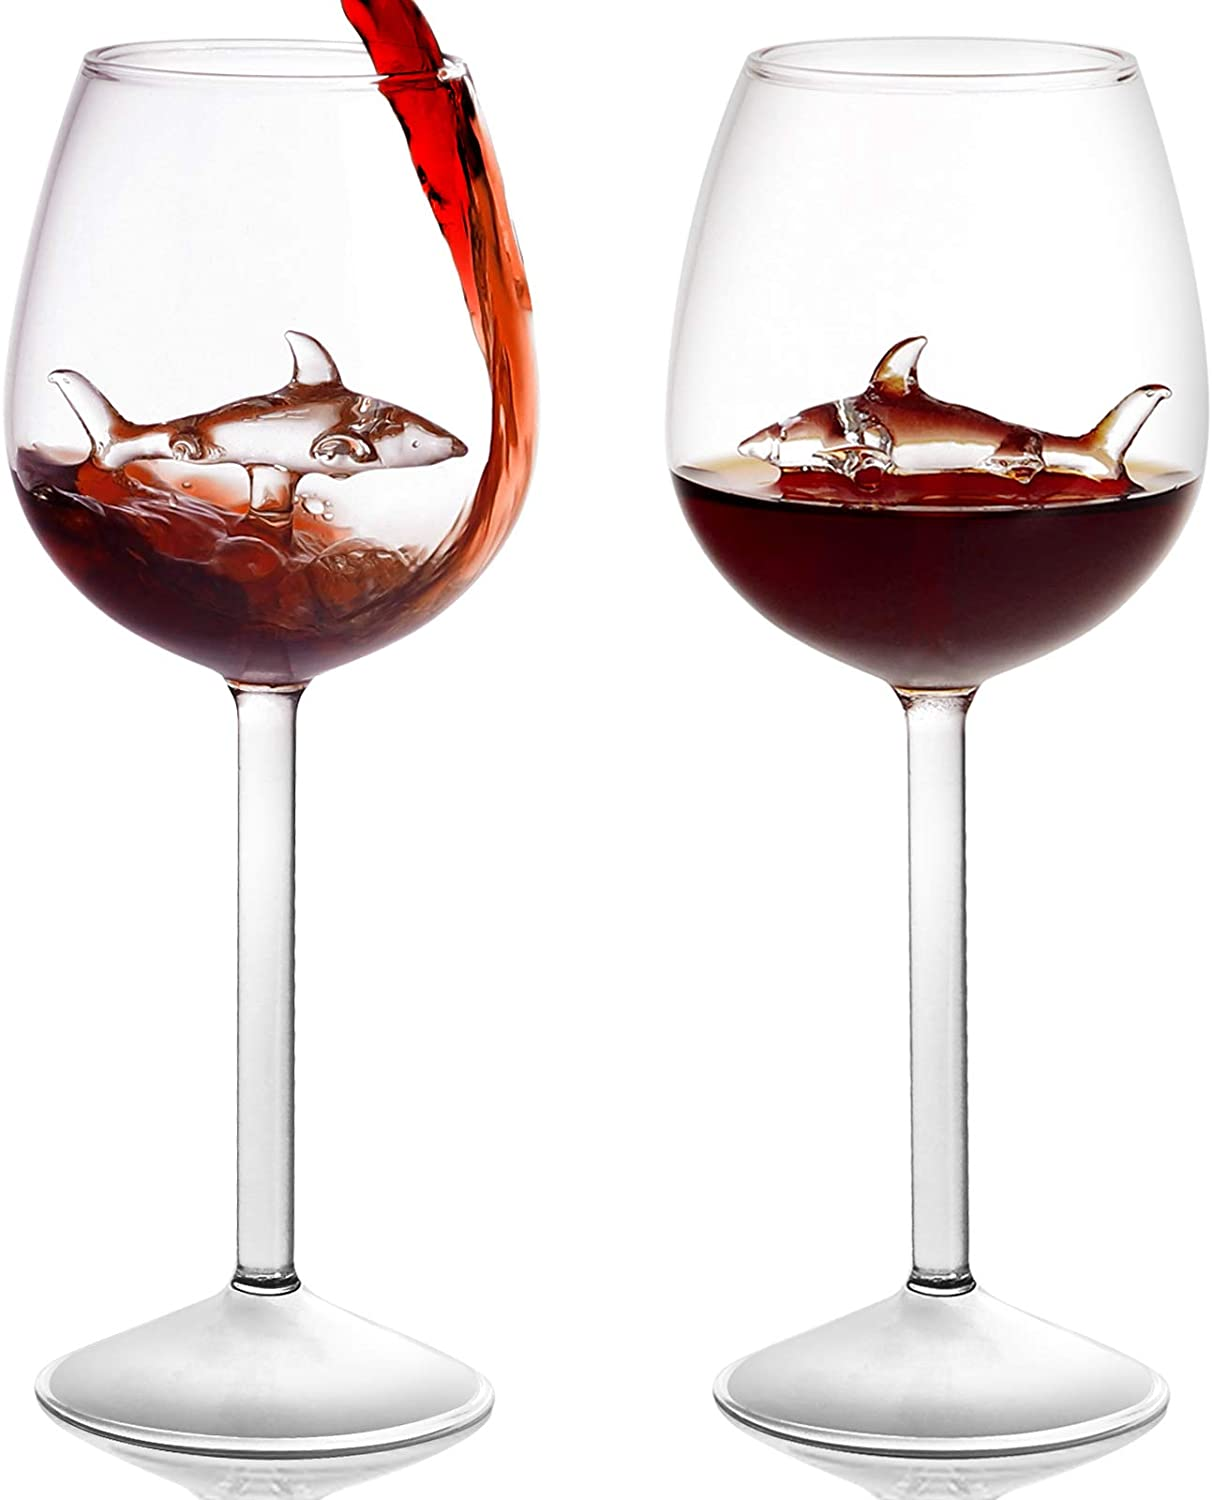 Shark Wine Glass with Shark Inside,Set of 2 Long Stem Red Wine Glasses,Crystal Clear Glass-for Women Men Wedding Anniversary Christmas Birthday,Shark Cup-10 Ounce